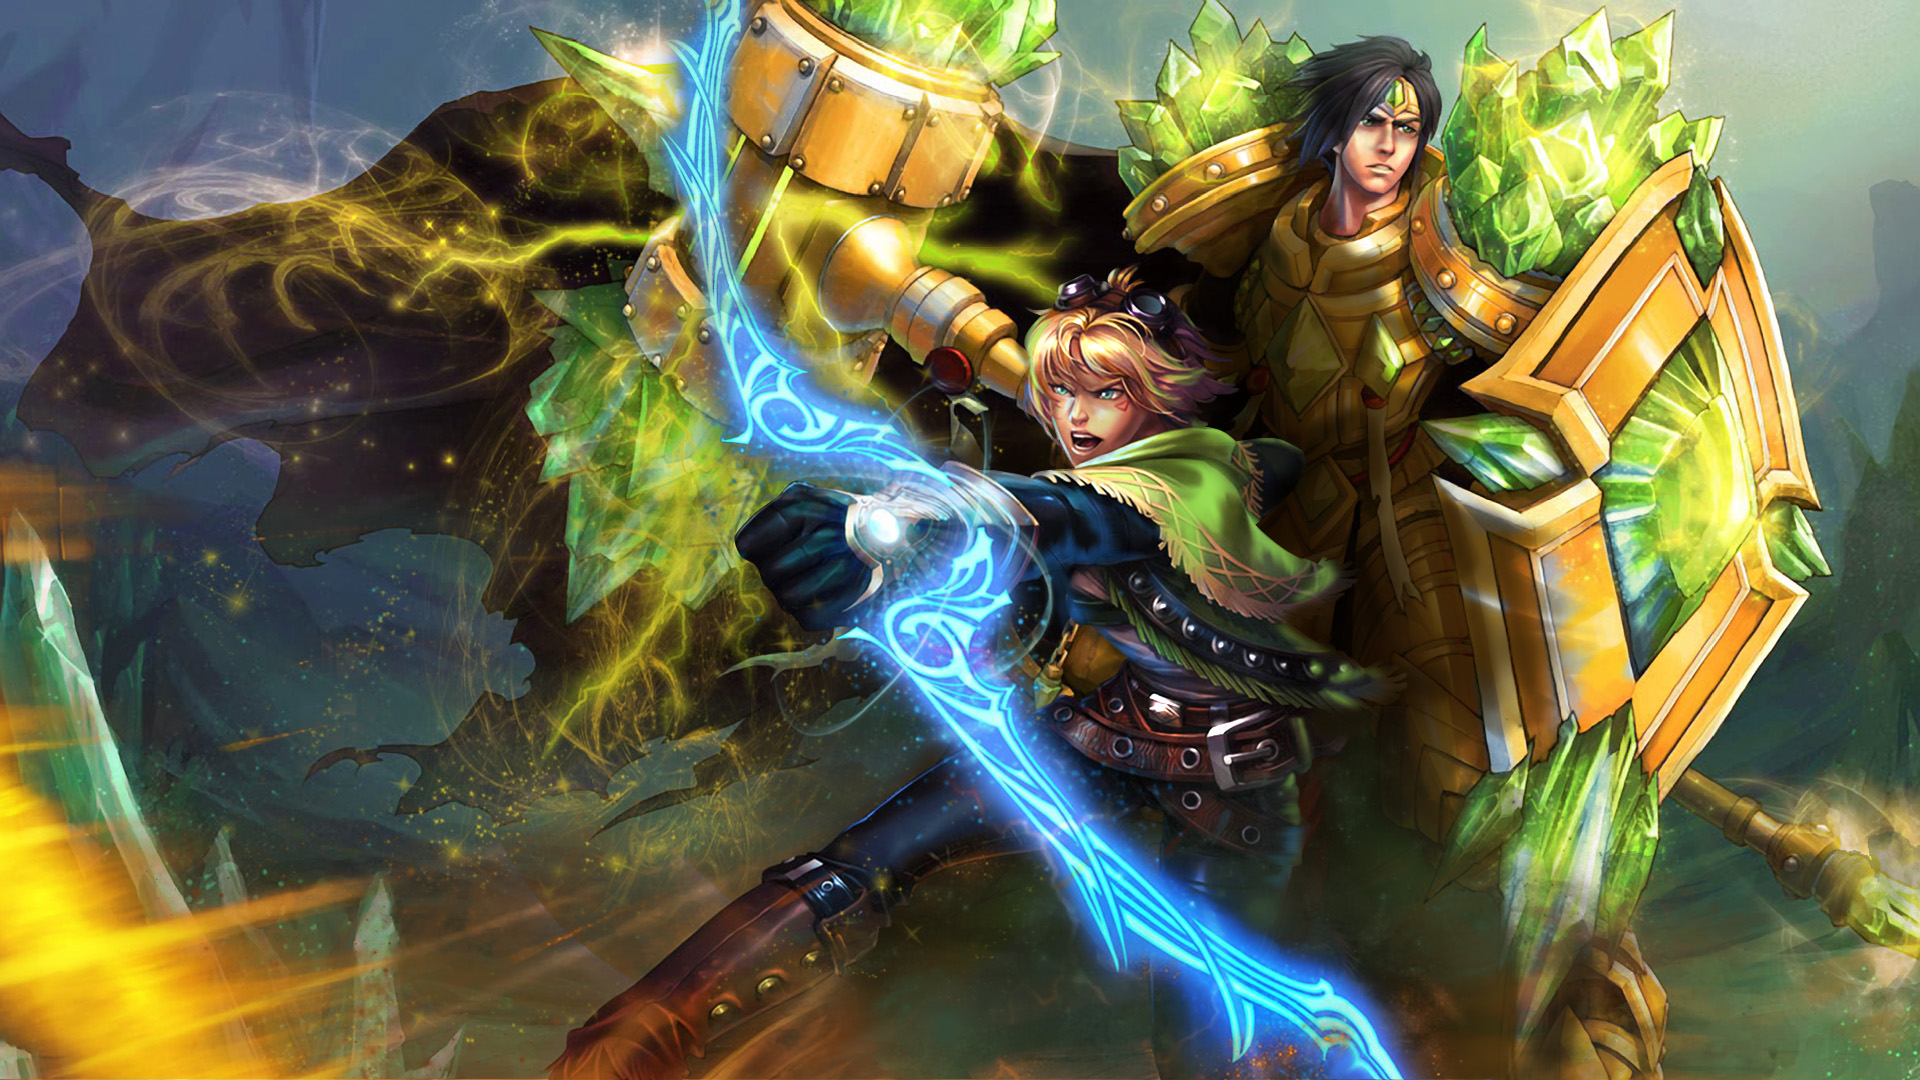 Taric & Ezreal Fan Art - League of Legends Wallpapers